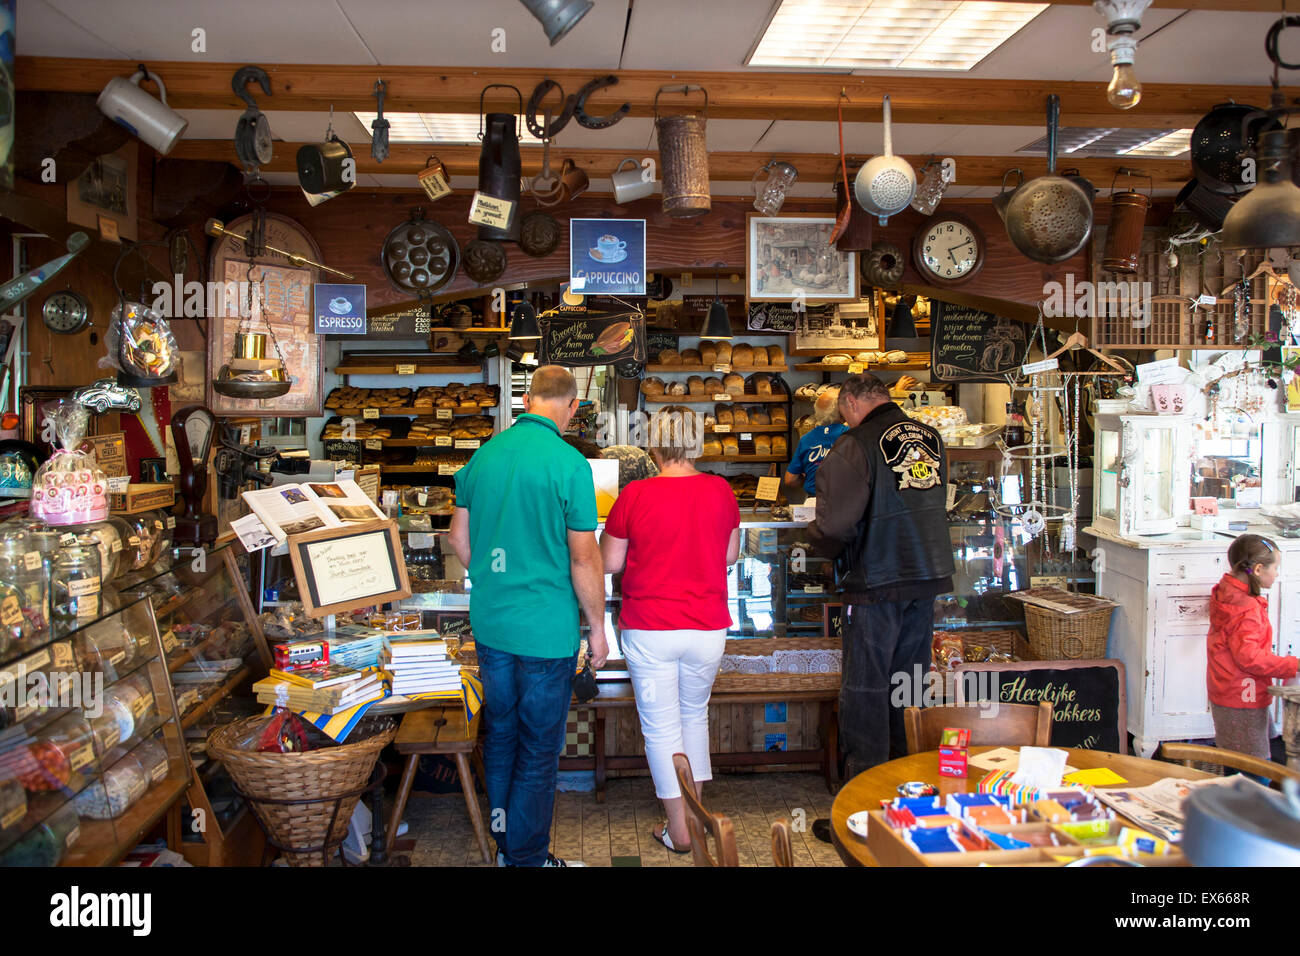 Europe, Netherlands, Zeeland, bakery Sonnemans in Burgh-Haamstede at Schouwen-Duiveland, the store and the environment - Stock Image